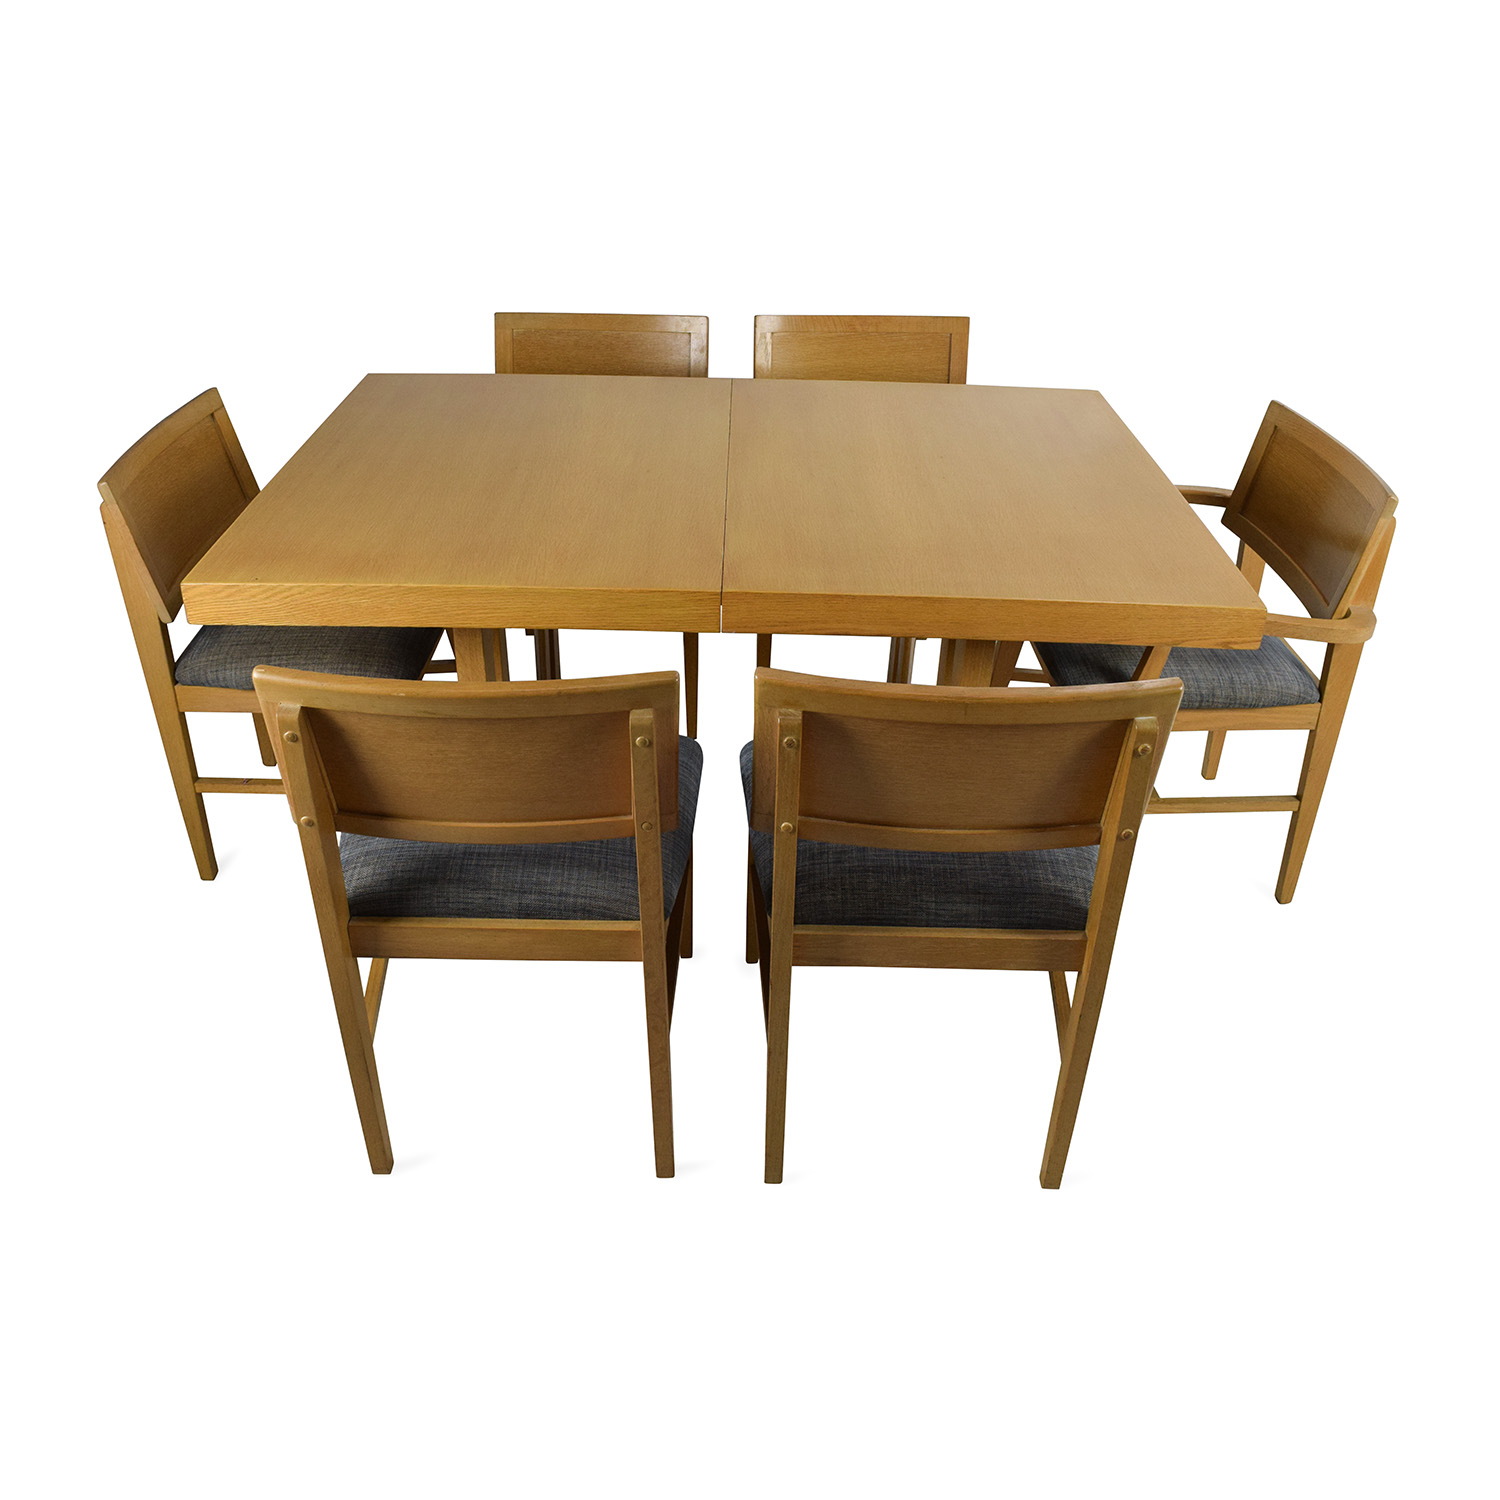 Dining Table And Chairs Gumtree Images